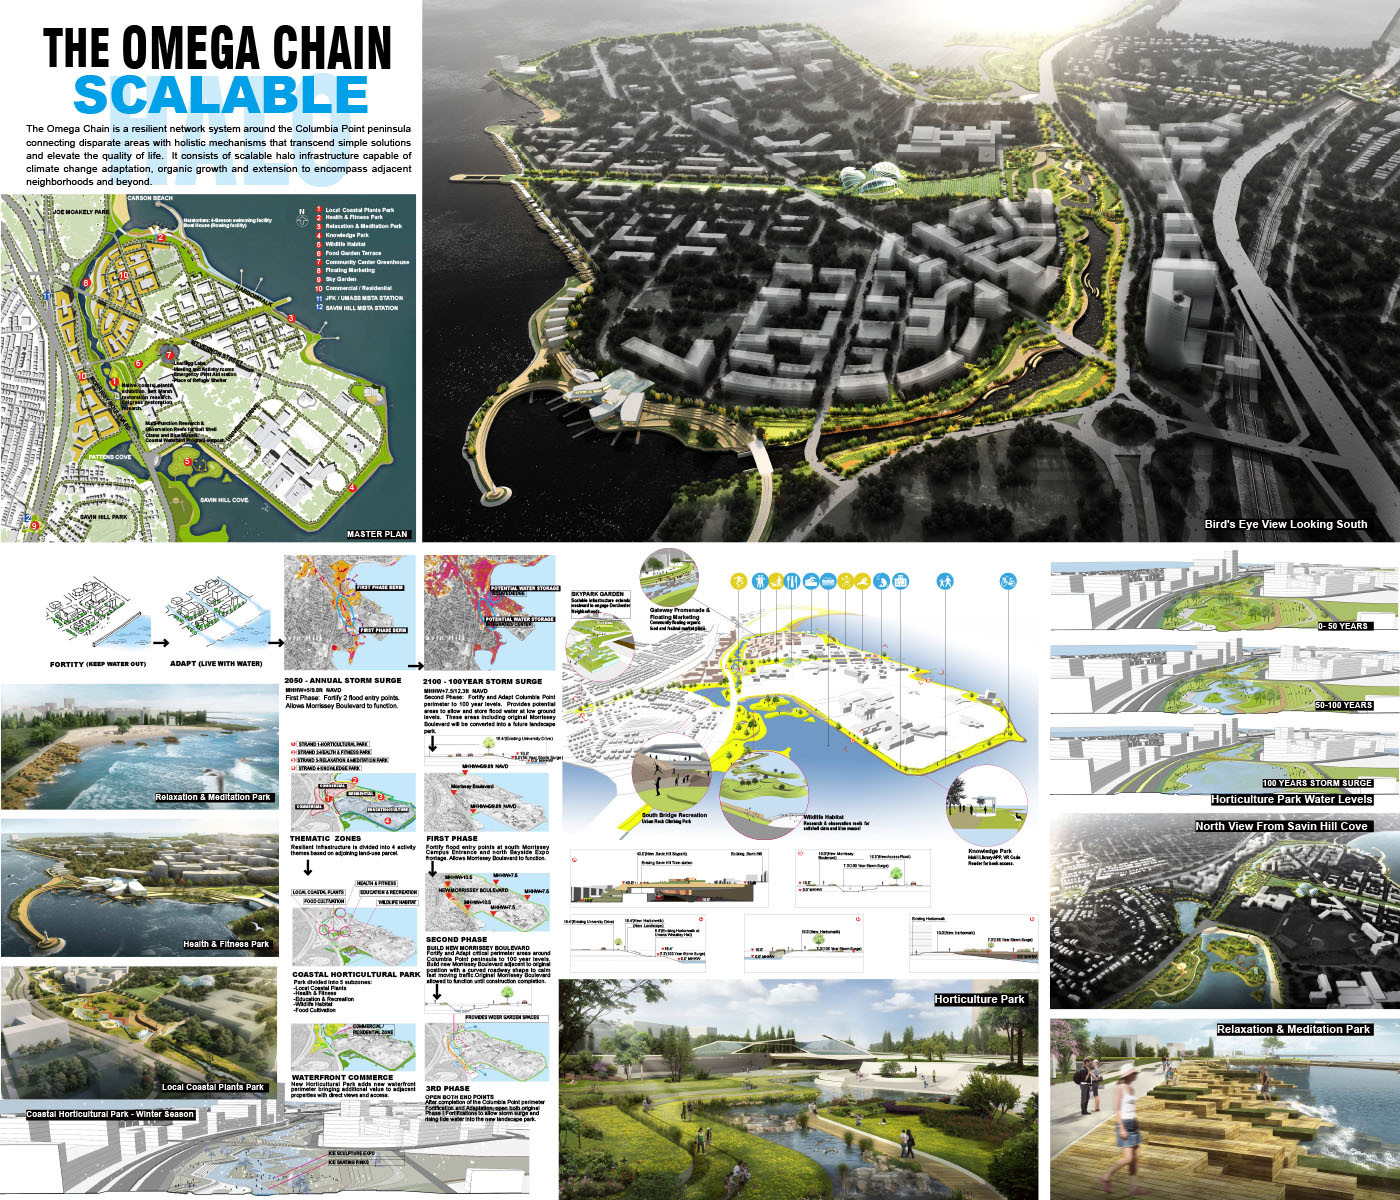 The Omega Chain. Image Courtesy of Boston Living with Water